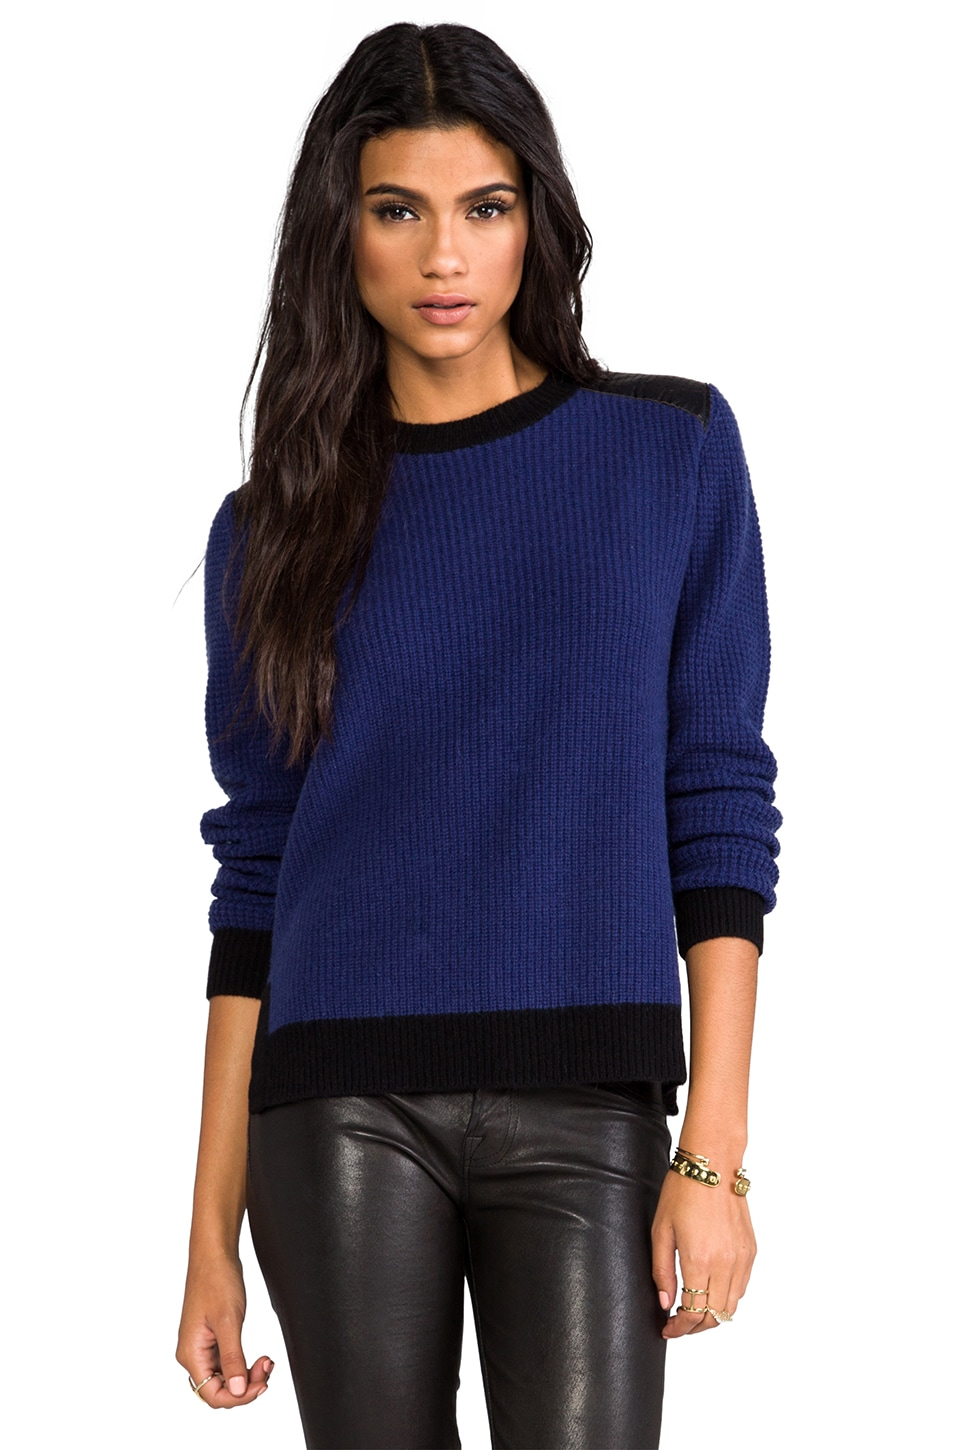 SHAE Waffle Stitch Pullover with Leather Detail in Midnight Combo